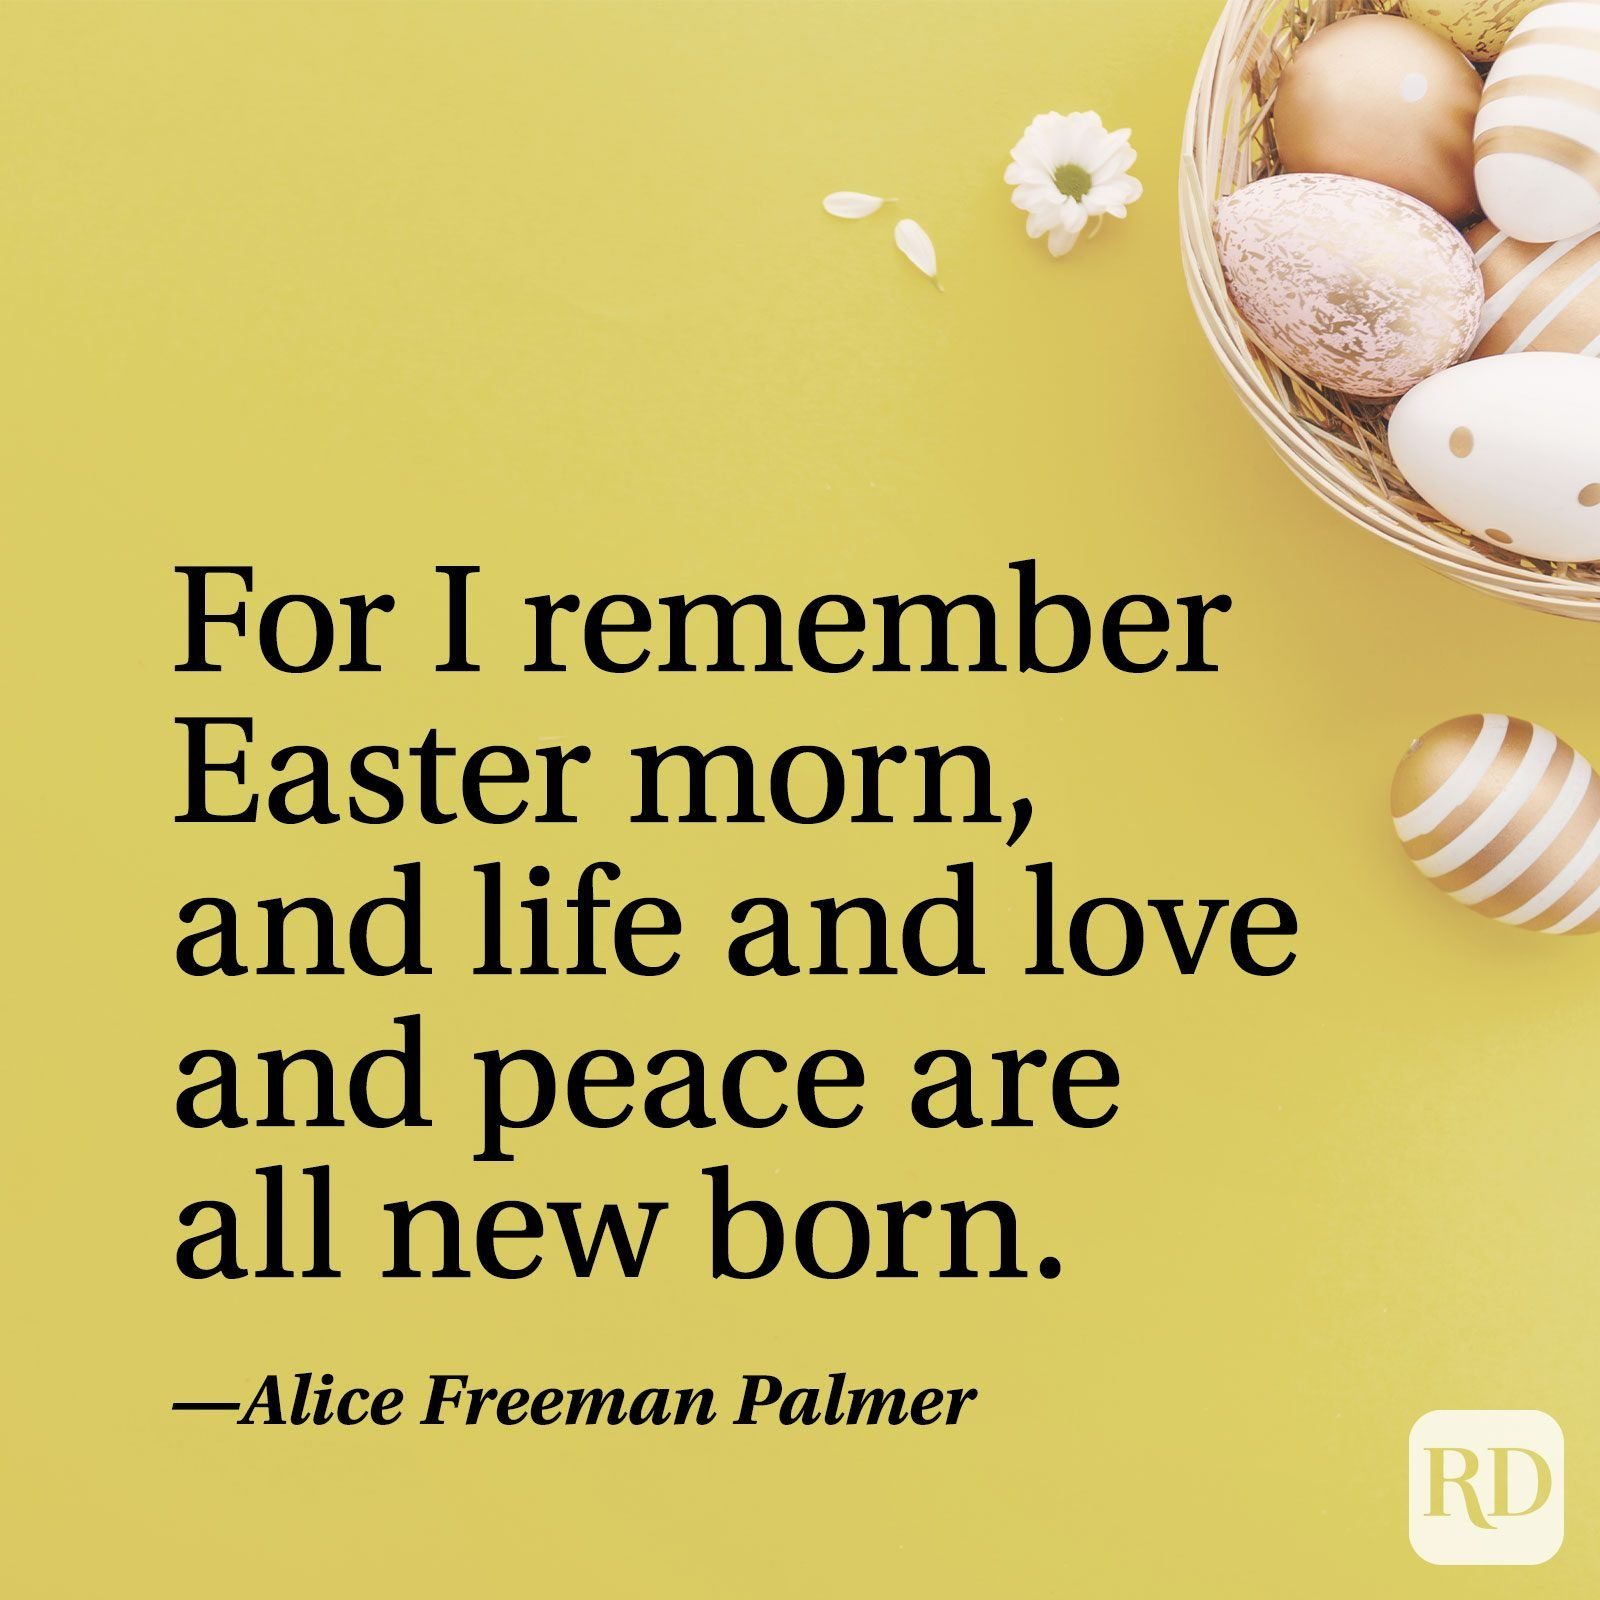 """""""For I remember Easter morn, and life and love and peace are all new born."""" — Alice Freeman Palmer"""